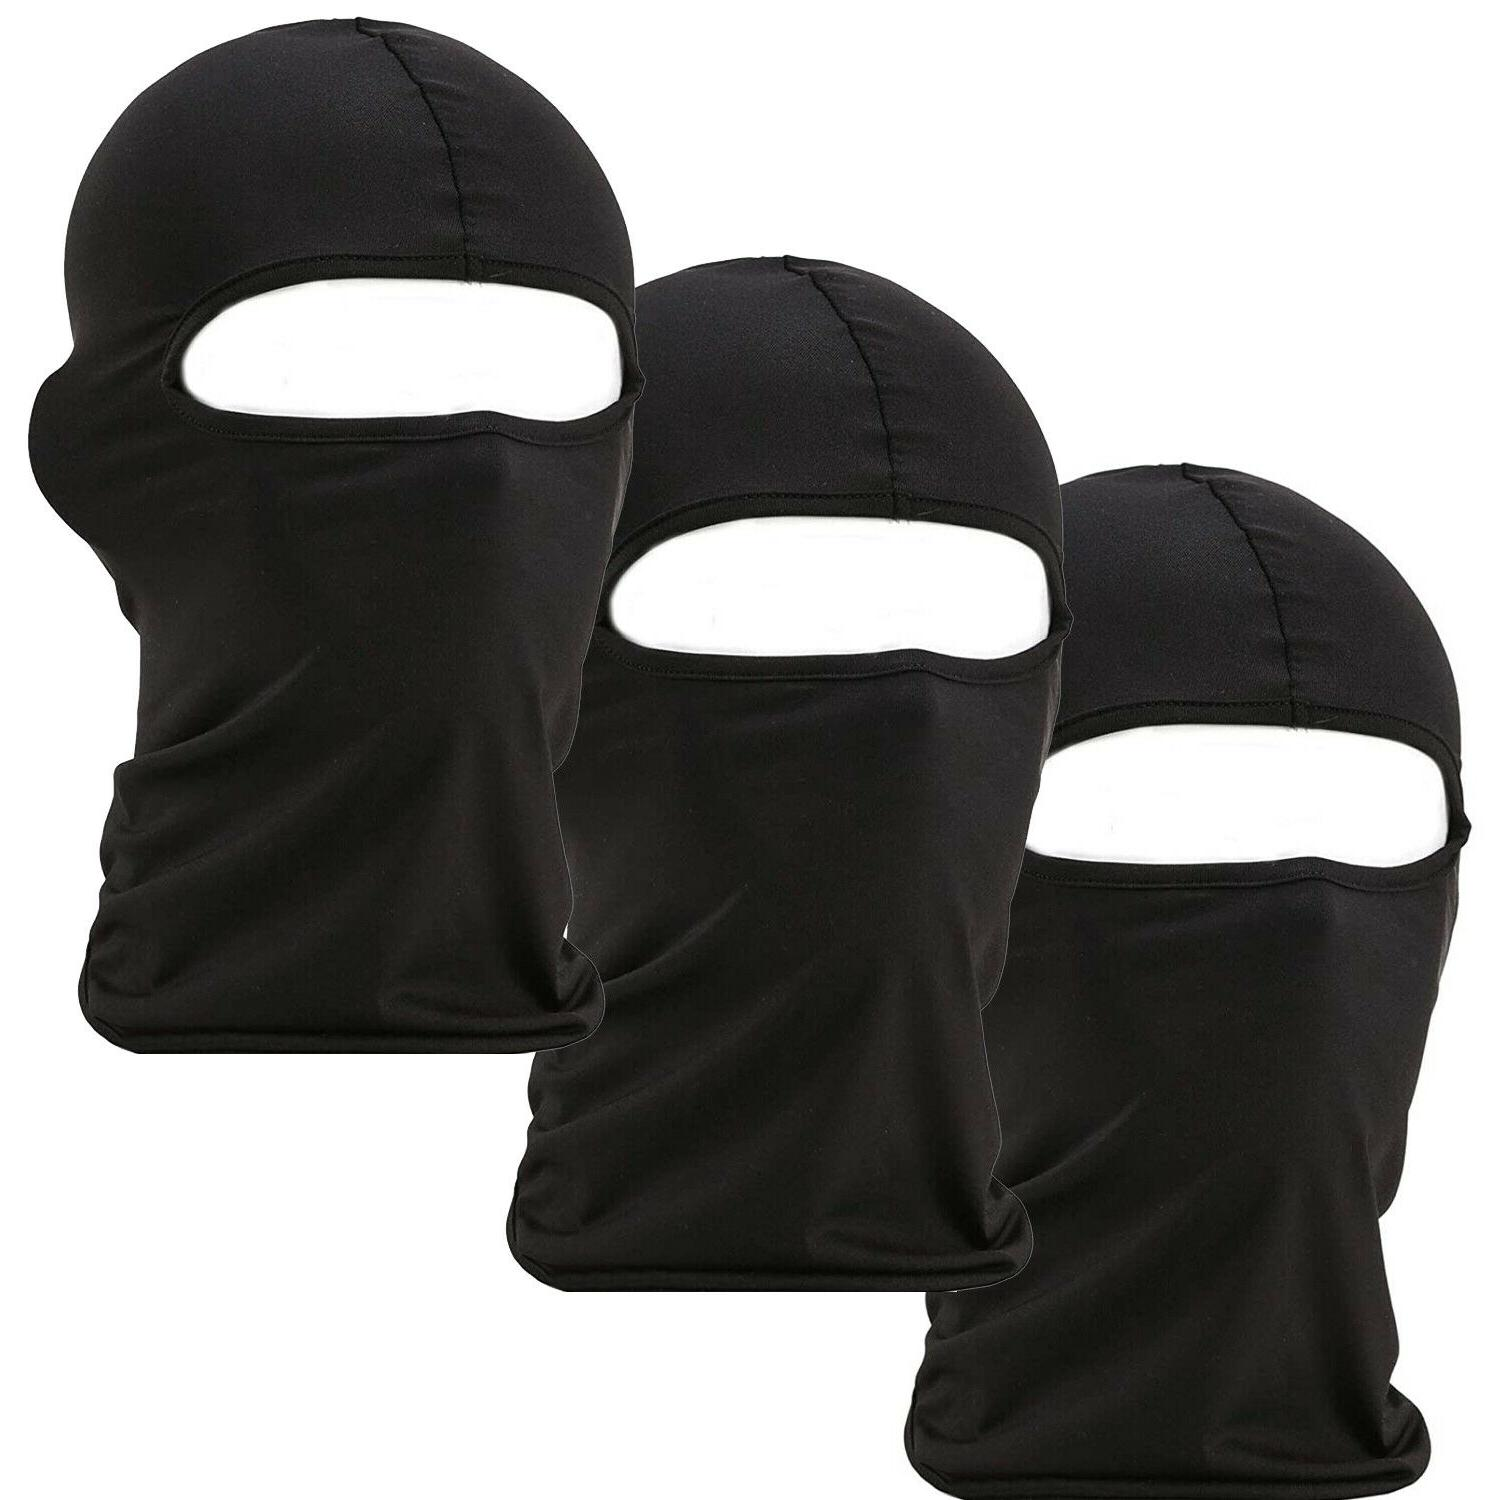 3 pack men balaclava black face mask